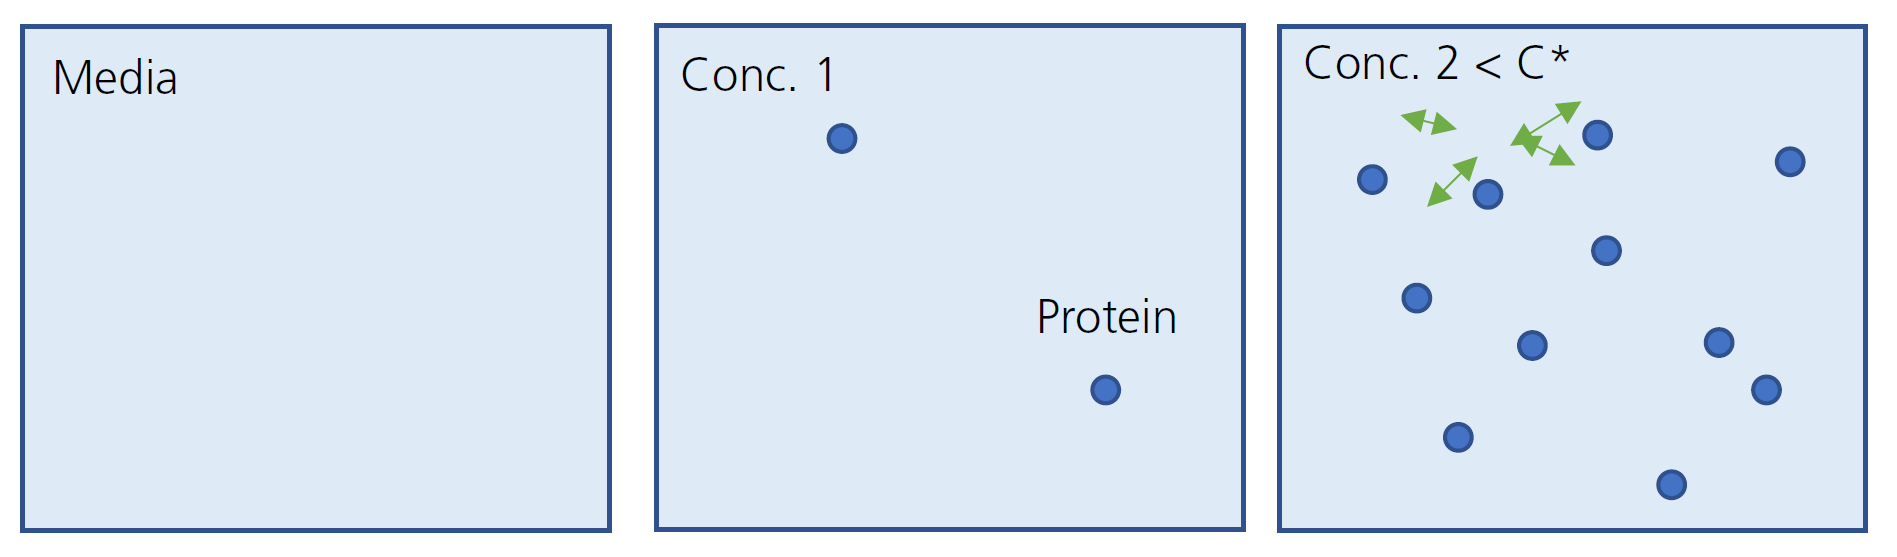 Protein Population in Accordance of Concentration